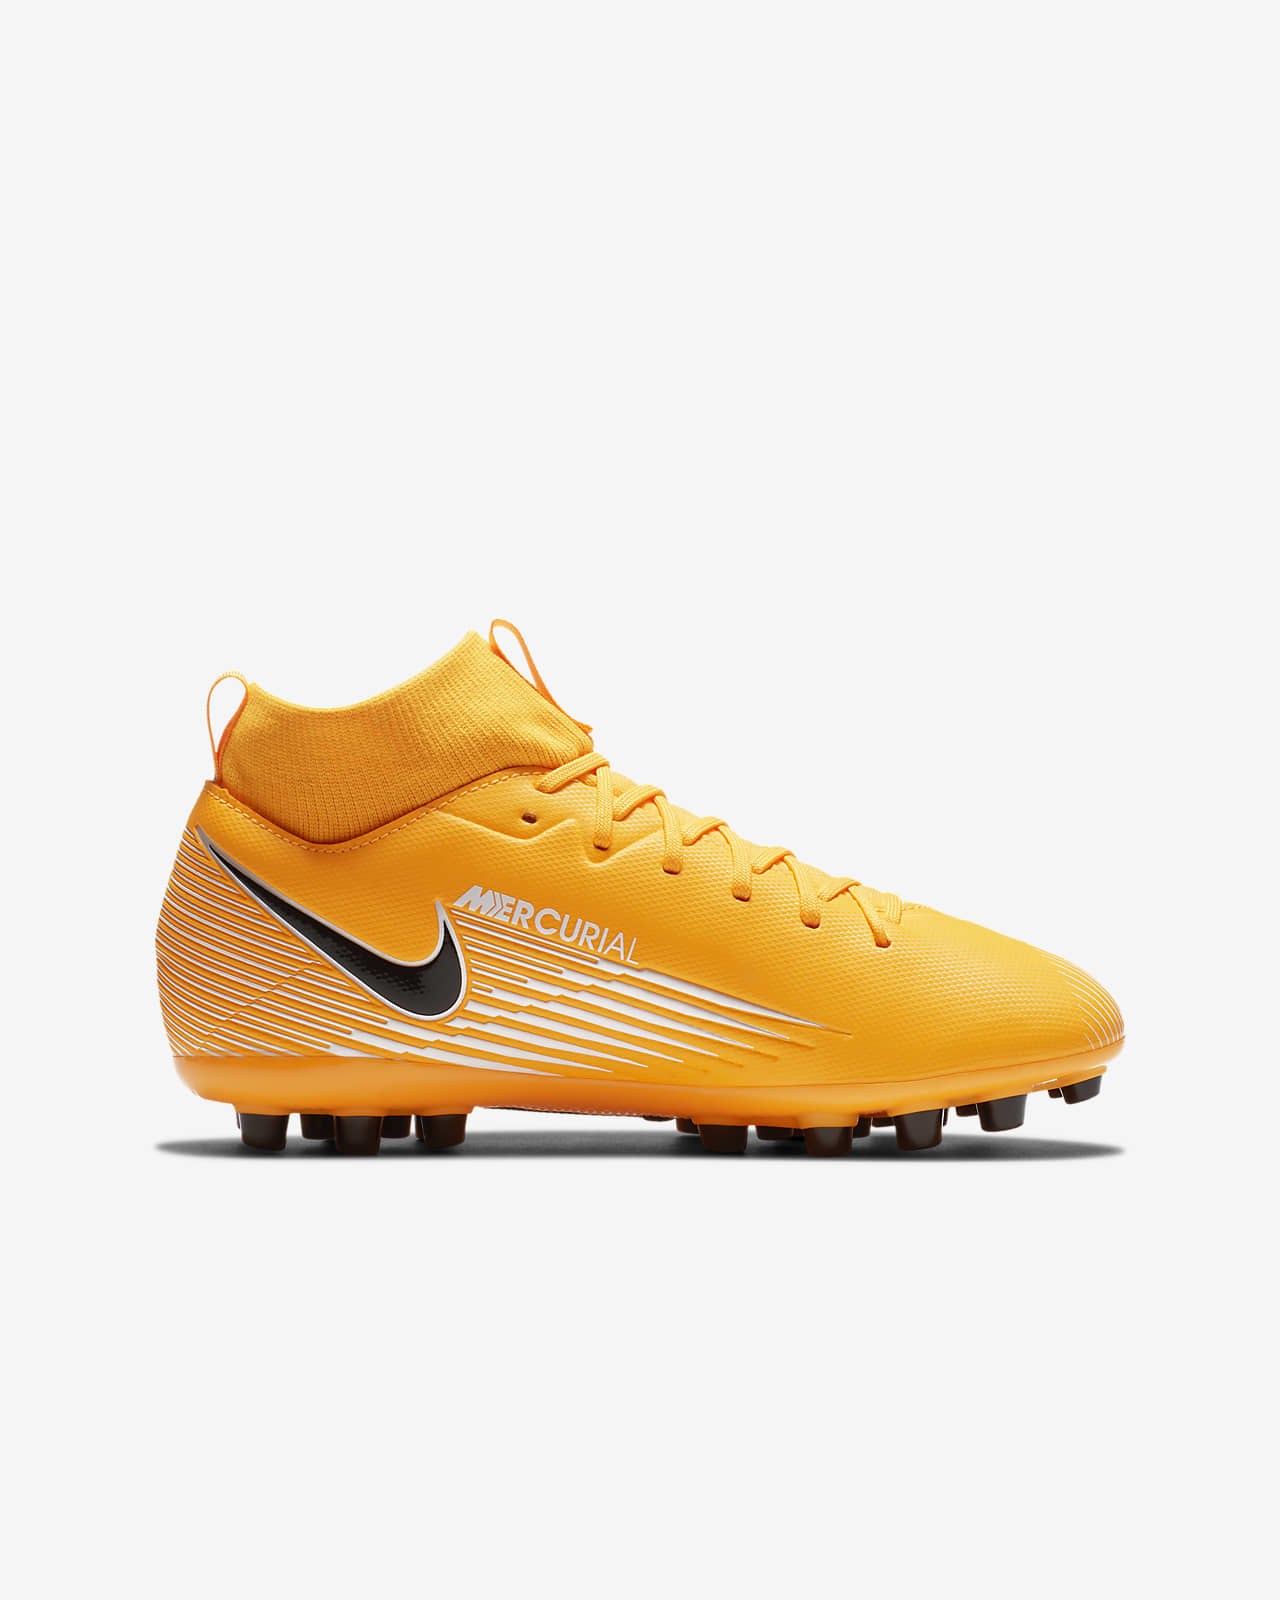 chaussure foot nike cr7 syntetique